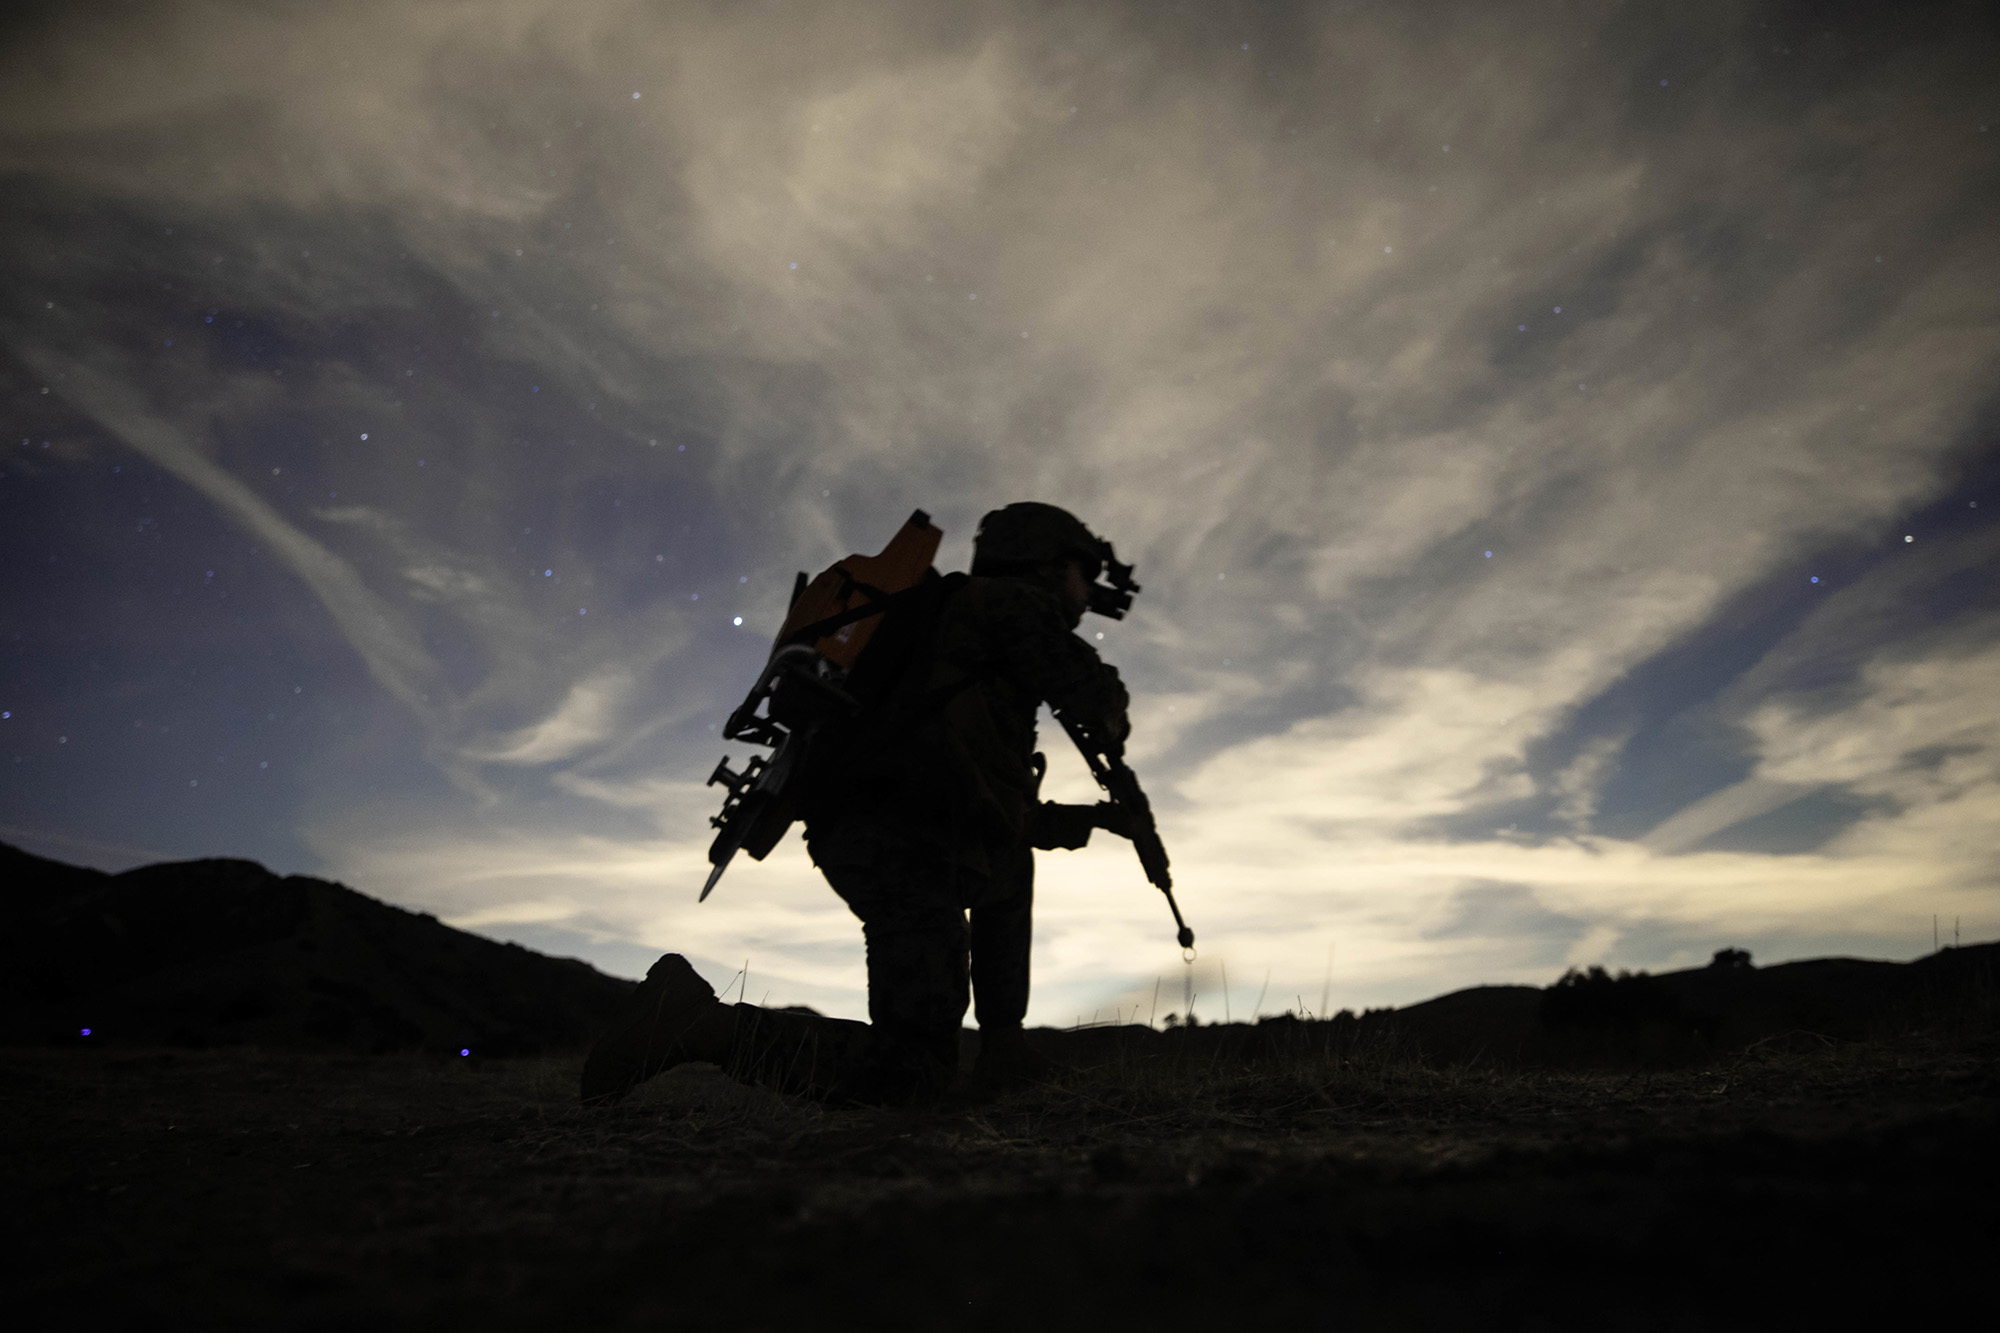 U.S. Marine Corps Lance Cpl. Michael Wick provides security during a Tactical Recovery of Aircraft and Personnel (TRAP) exercise at Marine Corps Base Camp Pendleton, Calif., Dec. 16, 2020. (Sgt. Jennessa Davey/Marine Corps)